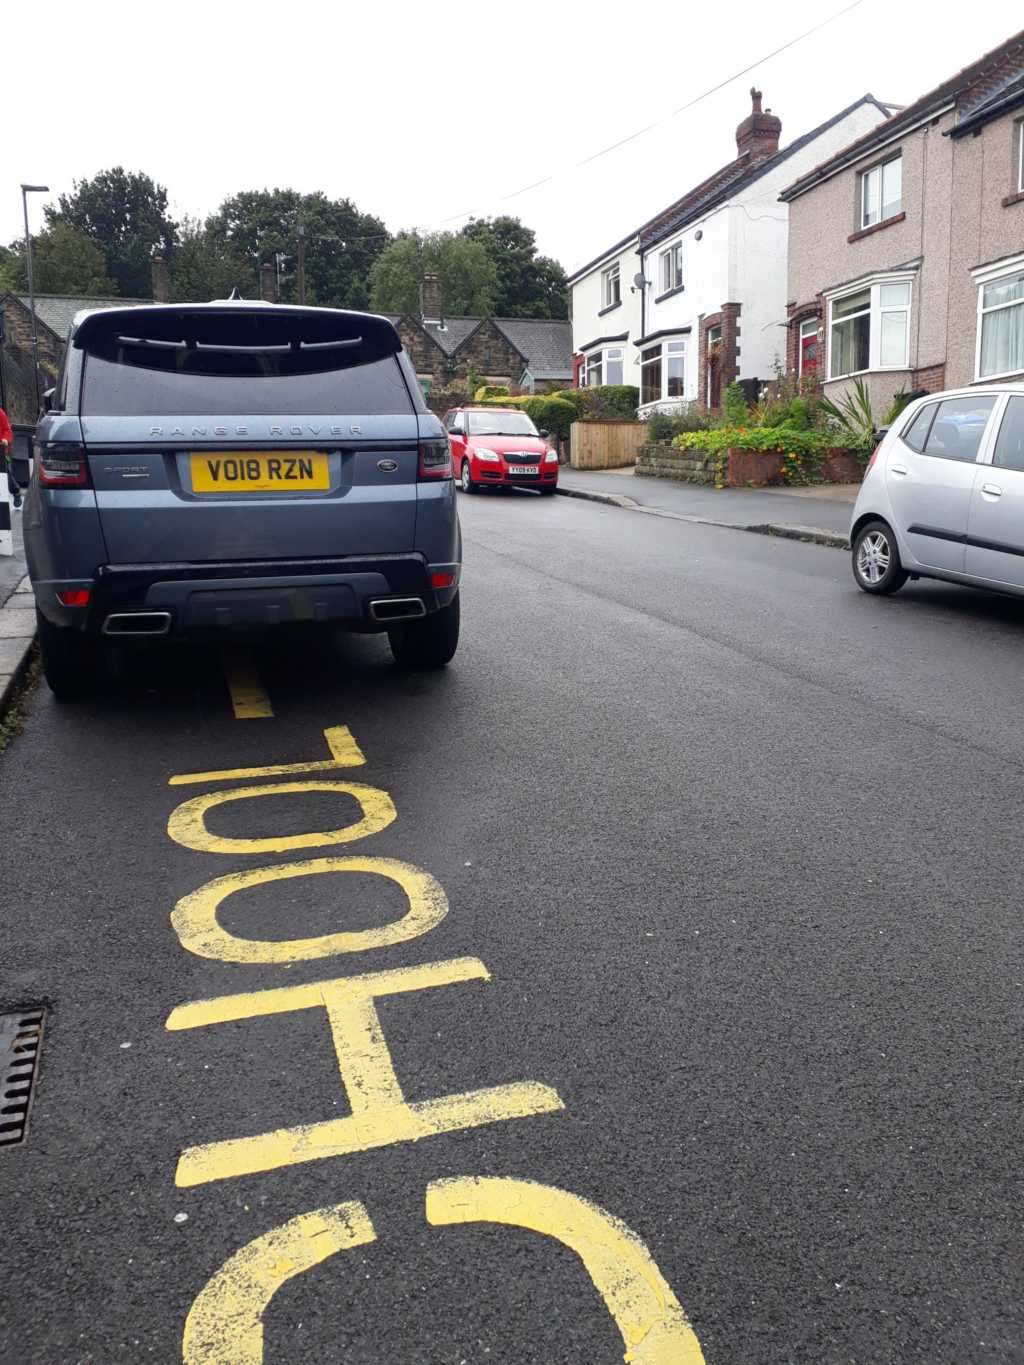 VO18 RZN displaying Inconsiderate Parking